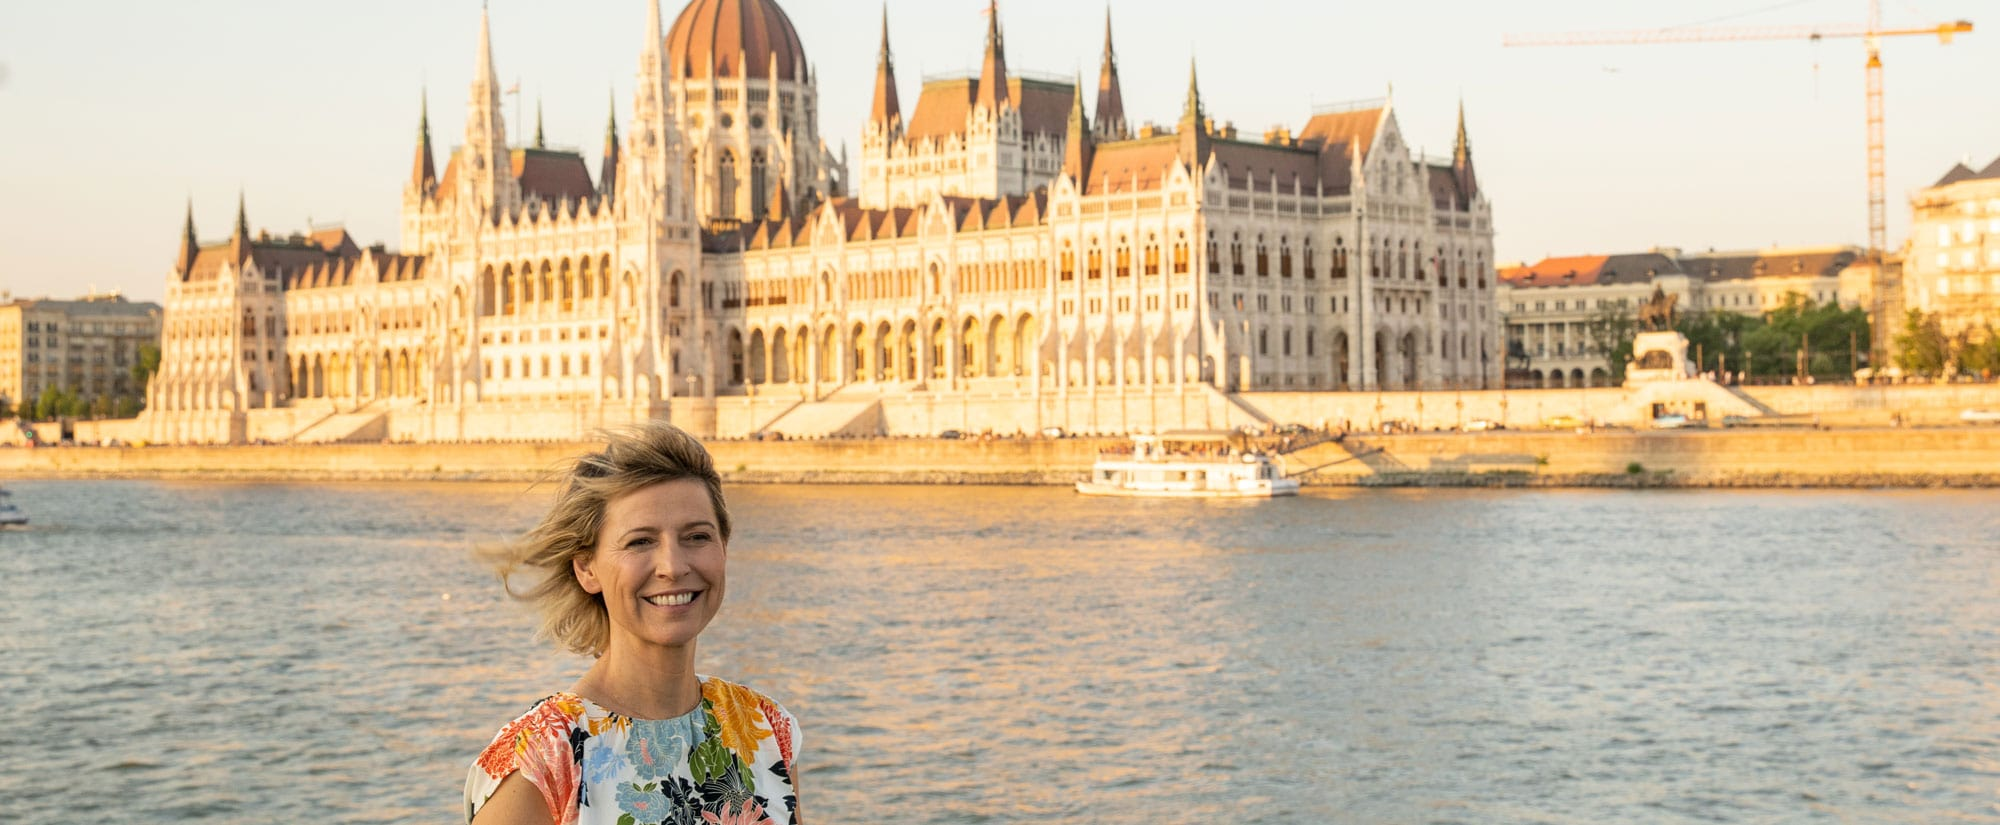 Parliament - Places To Love - Budapest - Samantha Brown